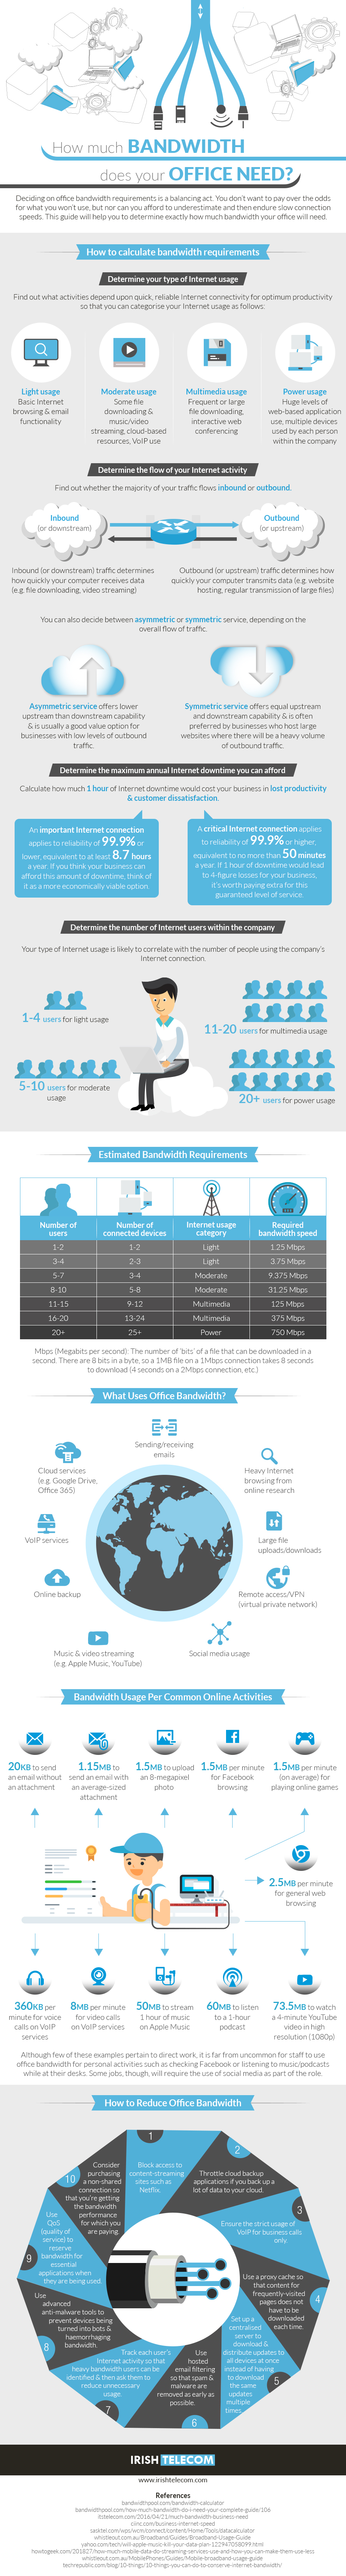 how-much-bandwidth-does-your-office-need